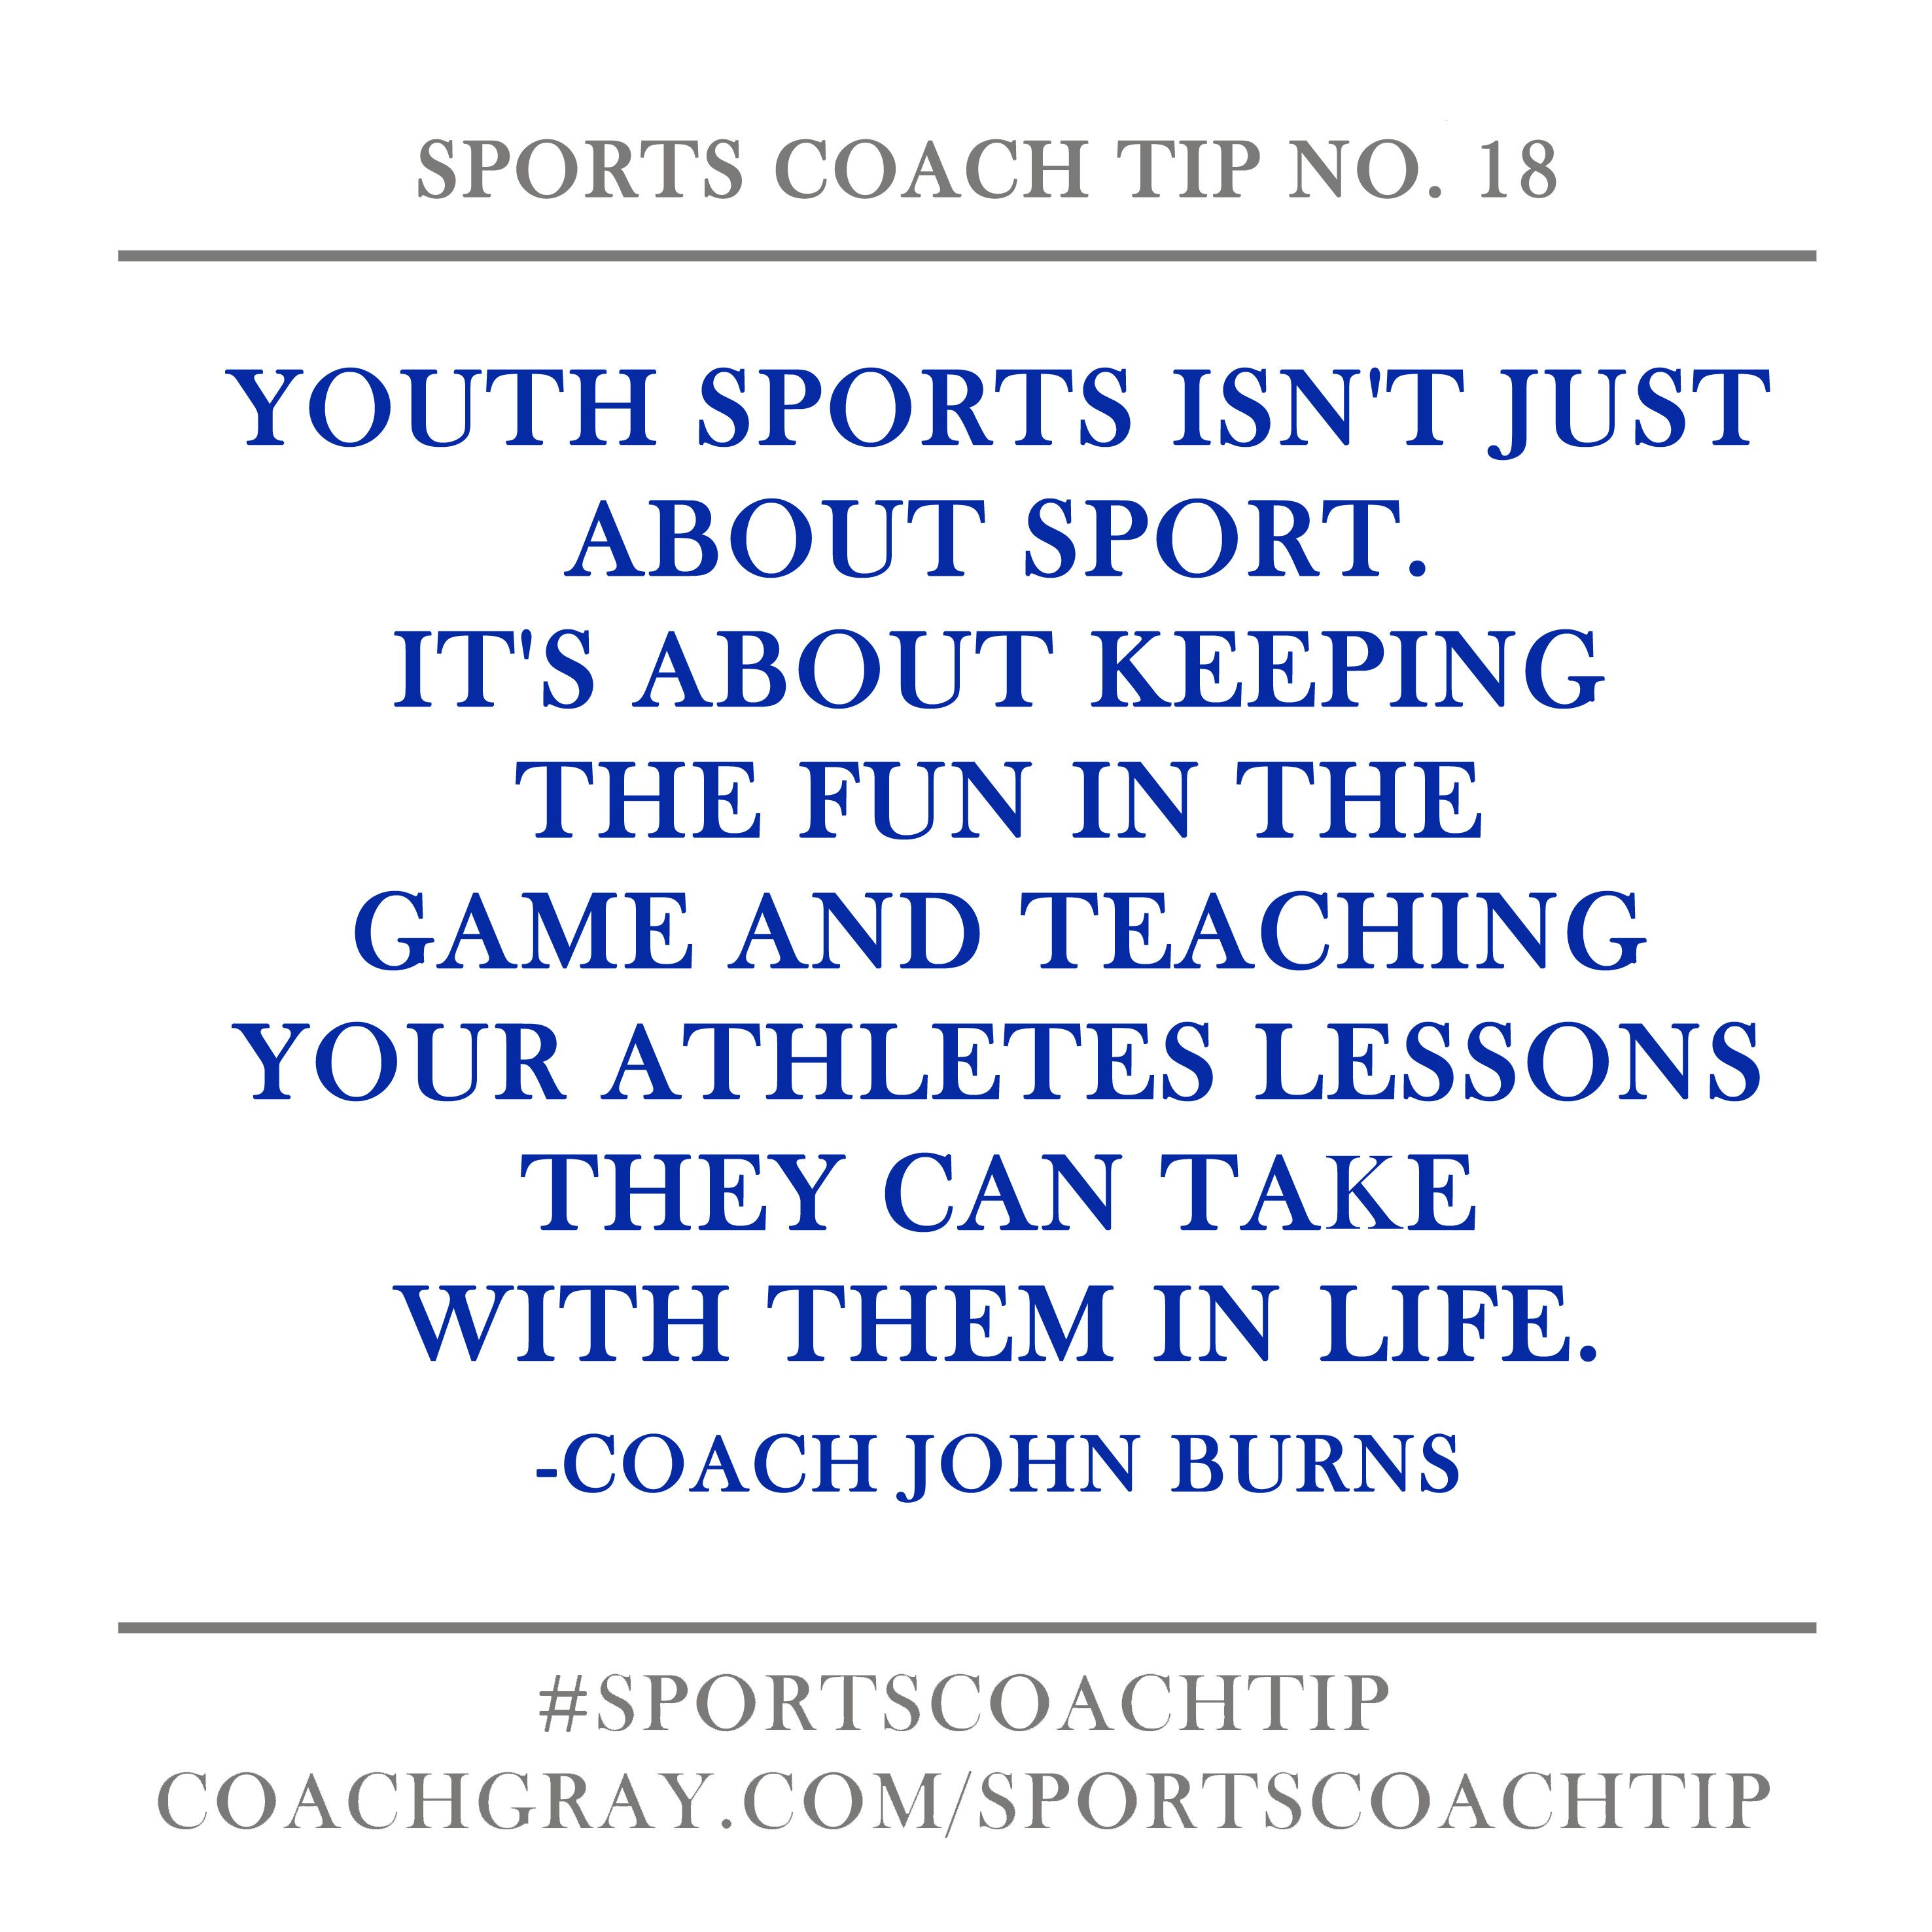 Sports Coach Tip No. 18 (With images) | Best sports quotes, Sports ...